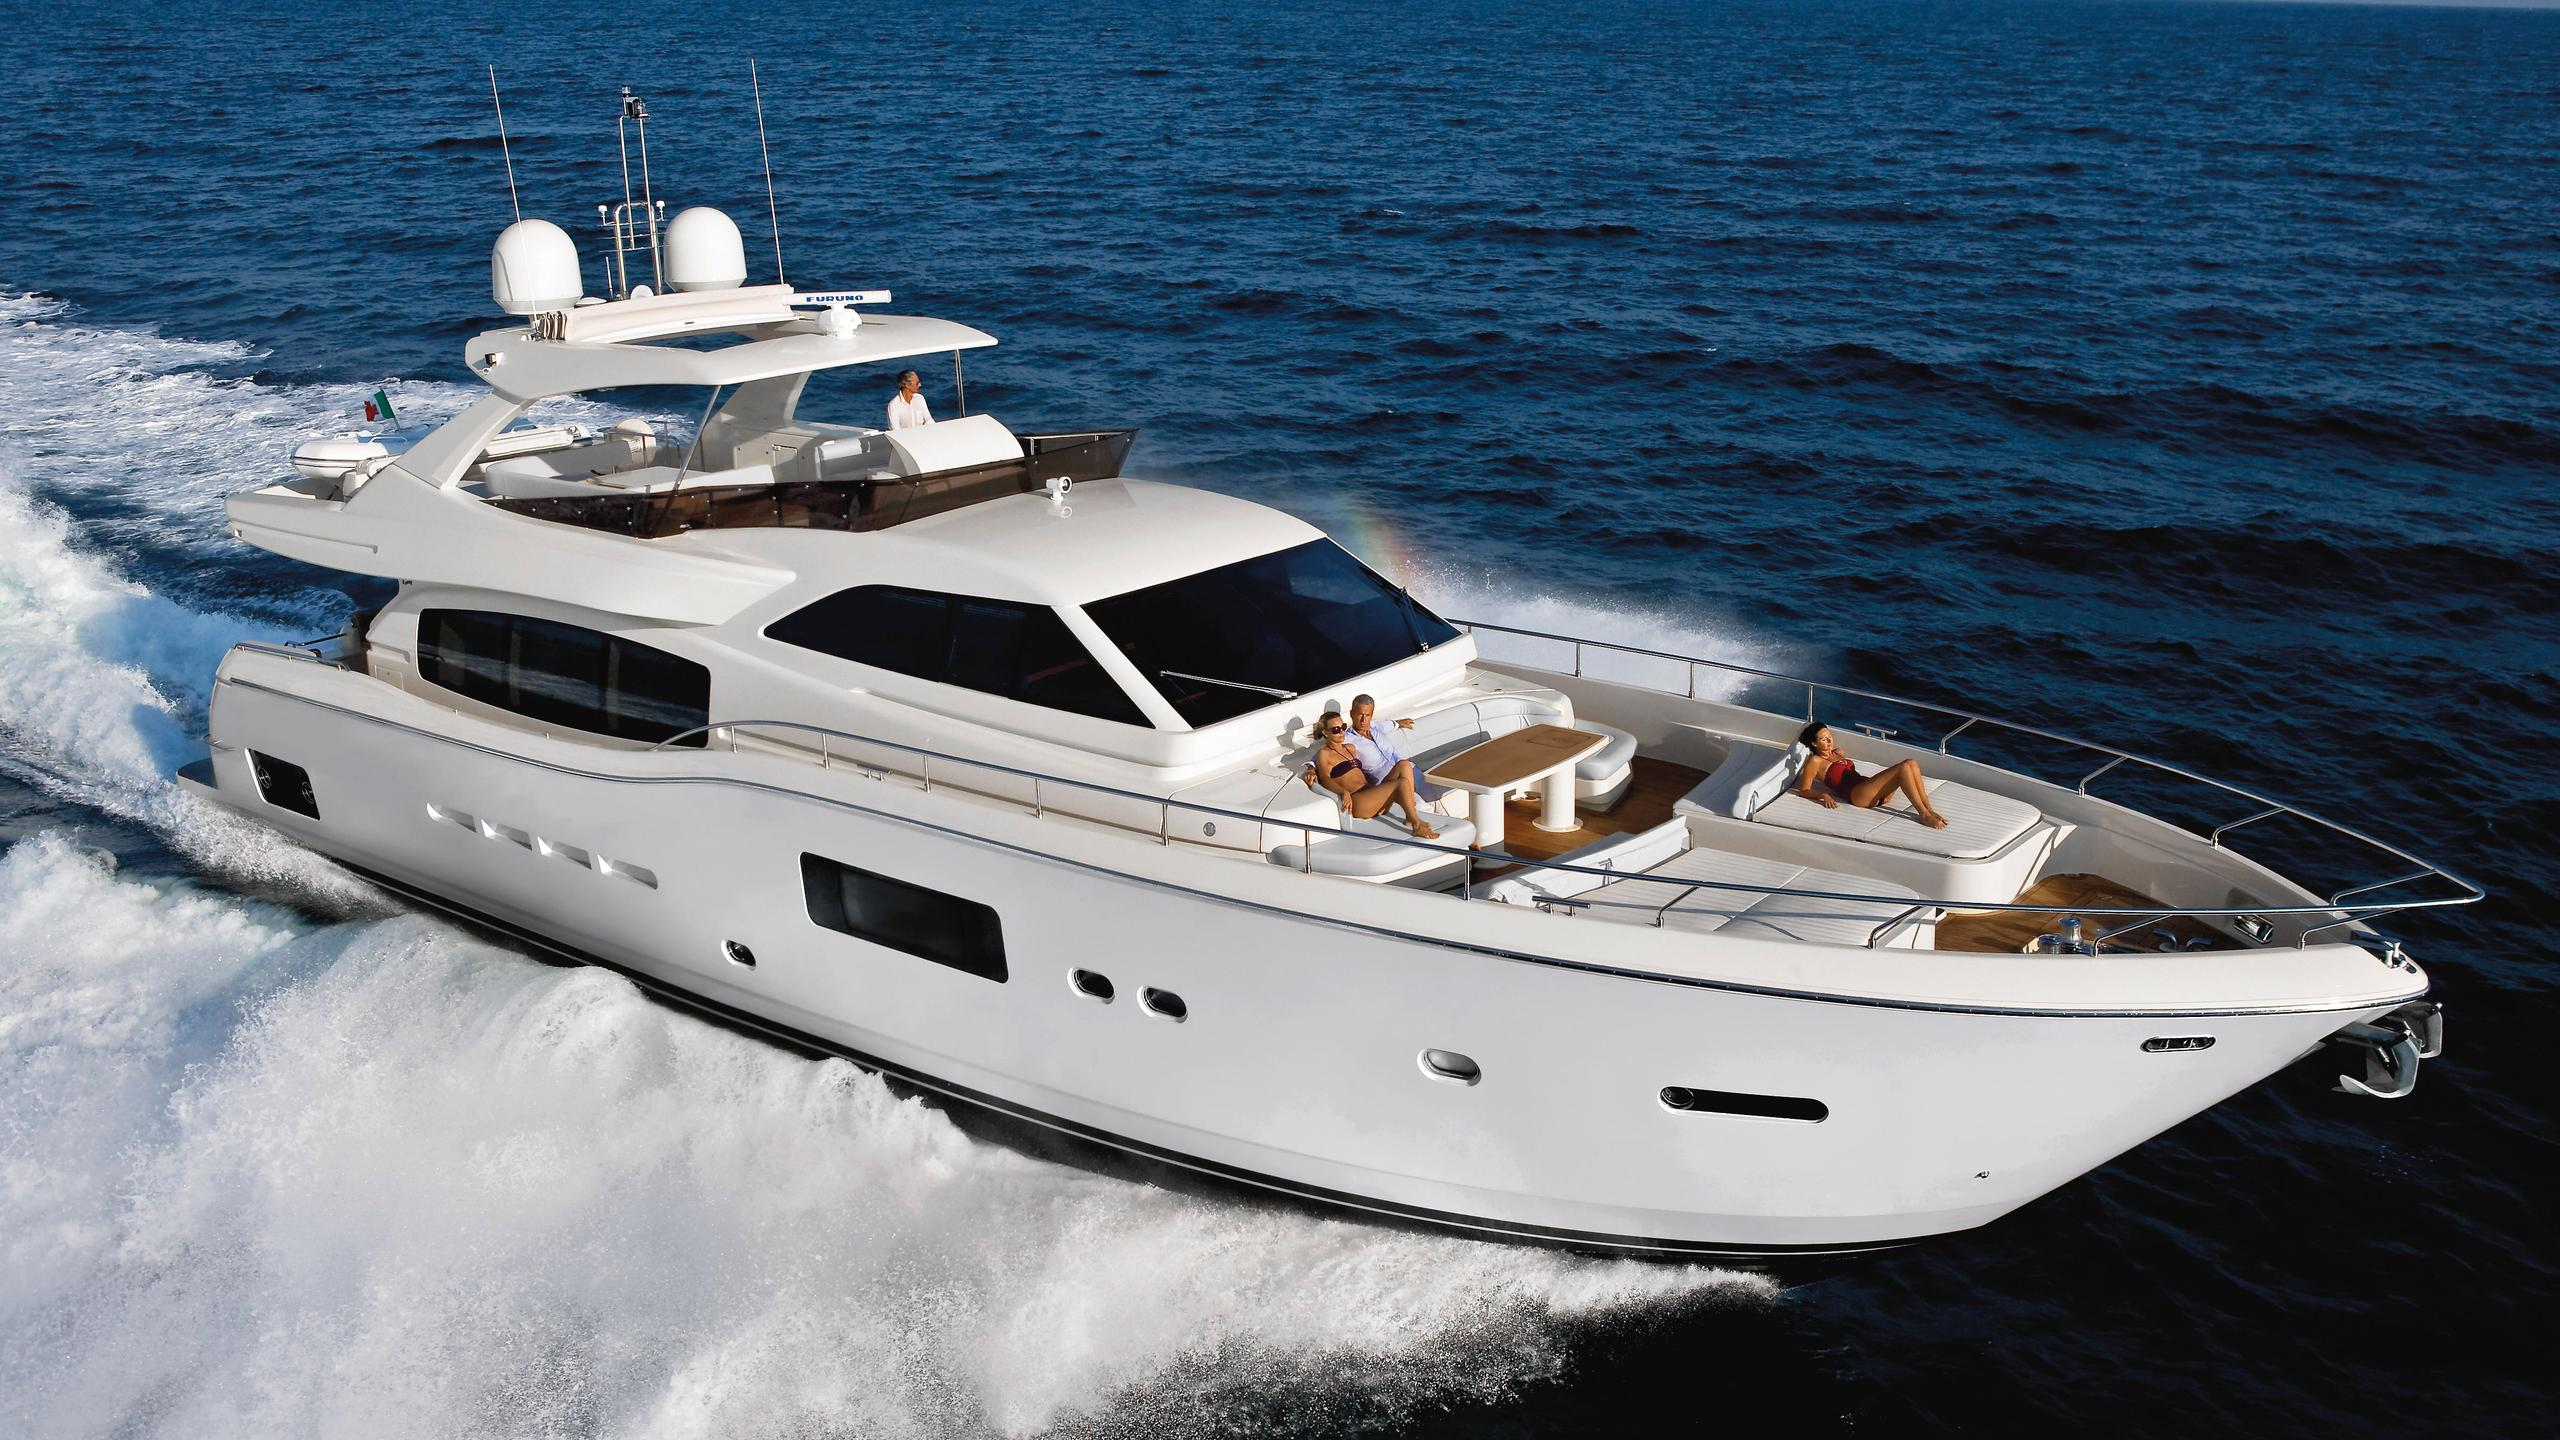 all rumors motoryacht ferretti altura 840 2015 26m cruising sistership